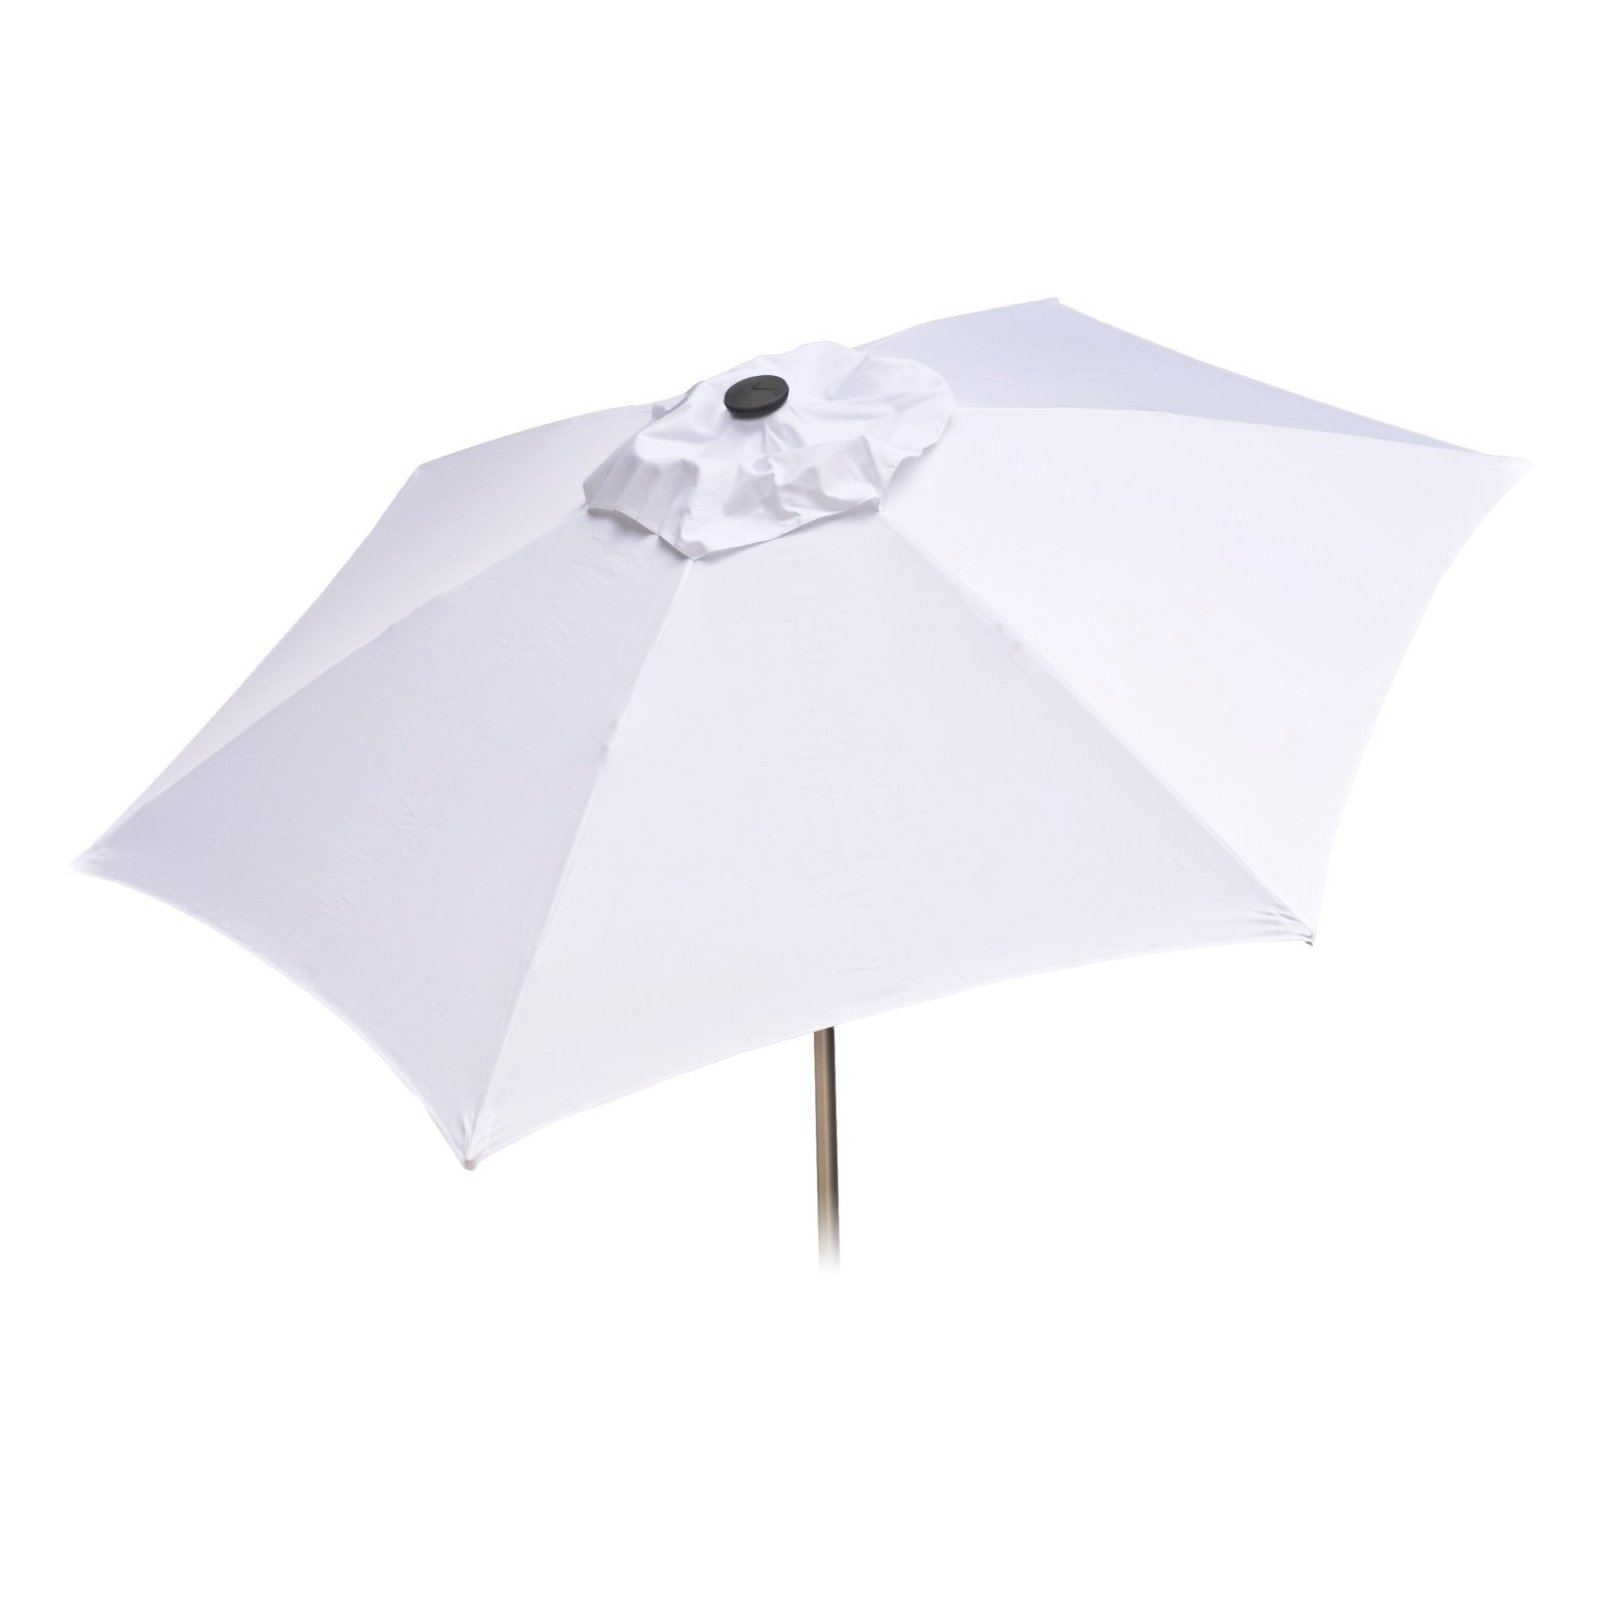 8ft Tilt Doppler Vented Market Umbrella Home Patio Outdoor Sun Canopy - White